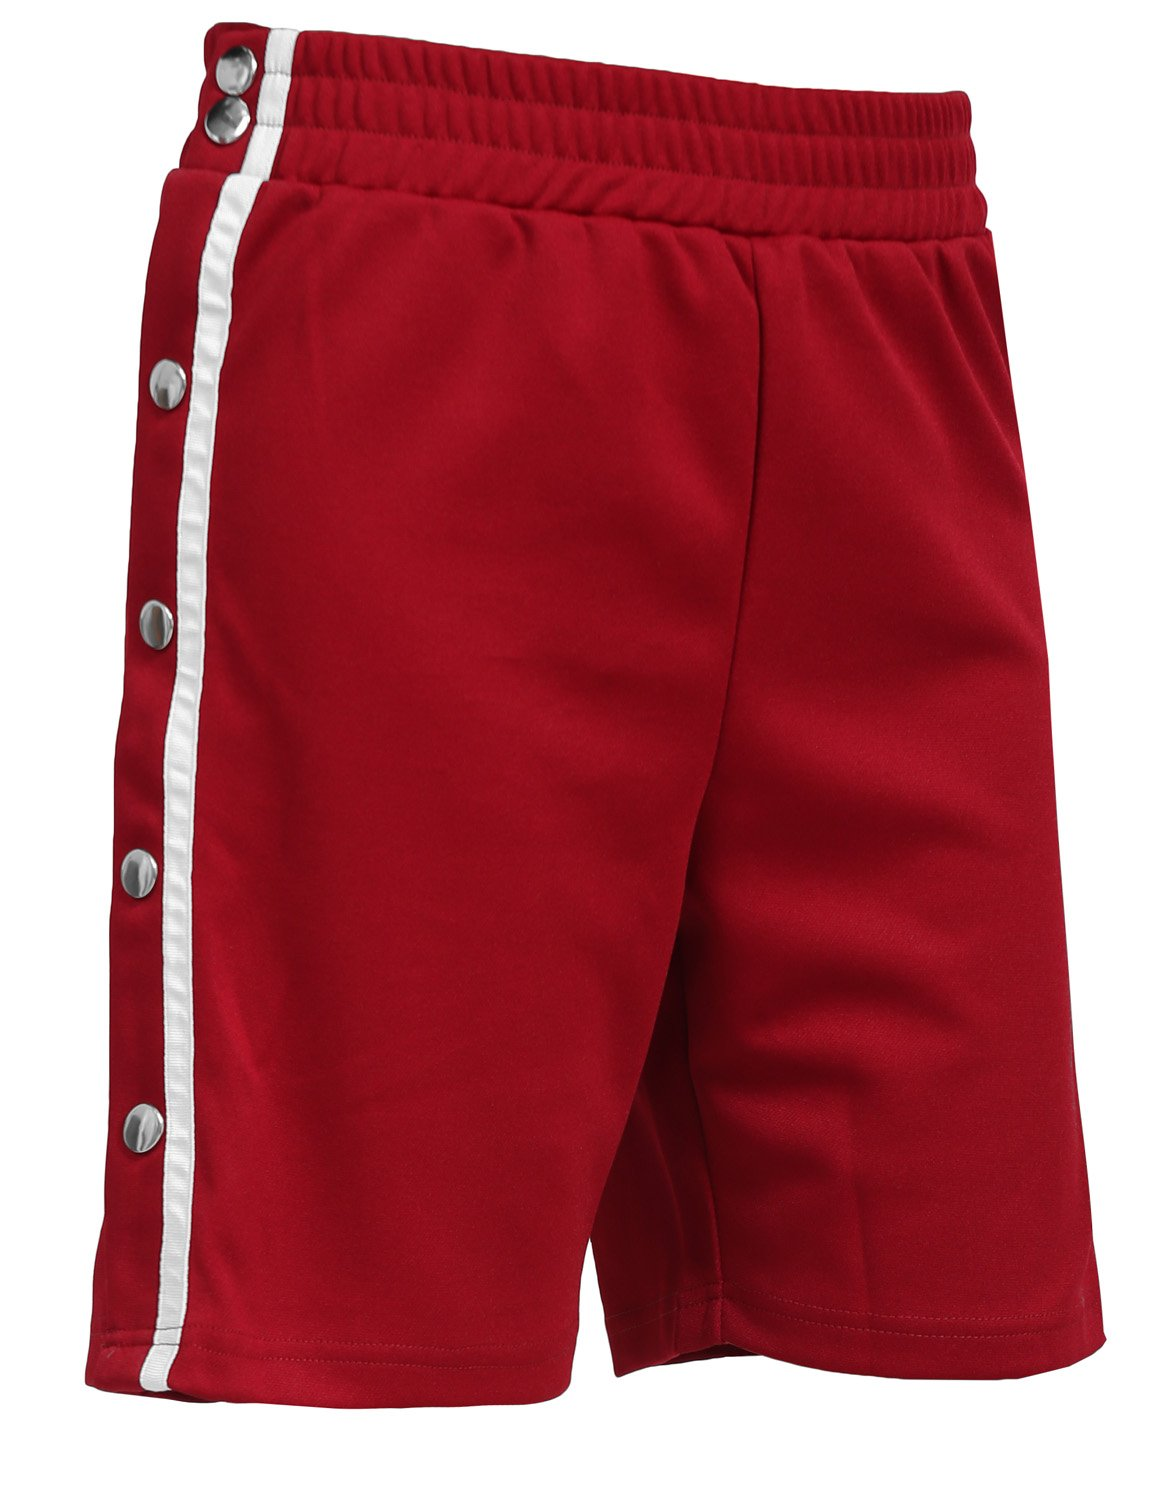 NE PEOPLE Womens Casual Elastic Side Snap Button on Track Shorts Wide Leg Pants